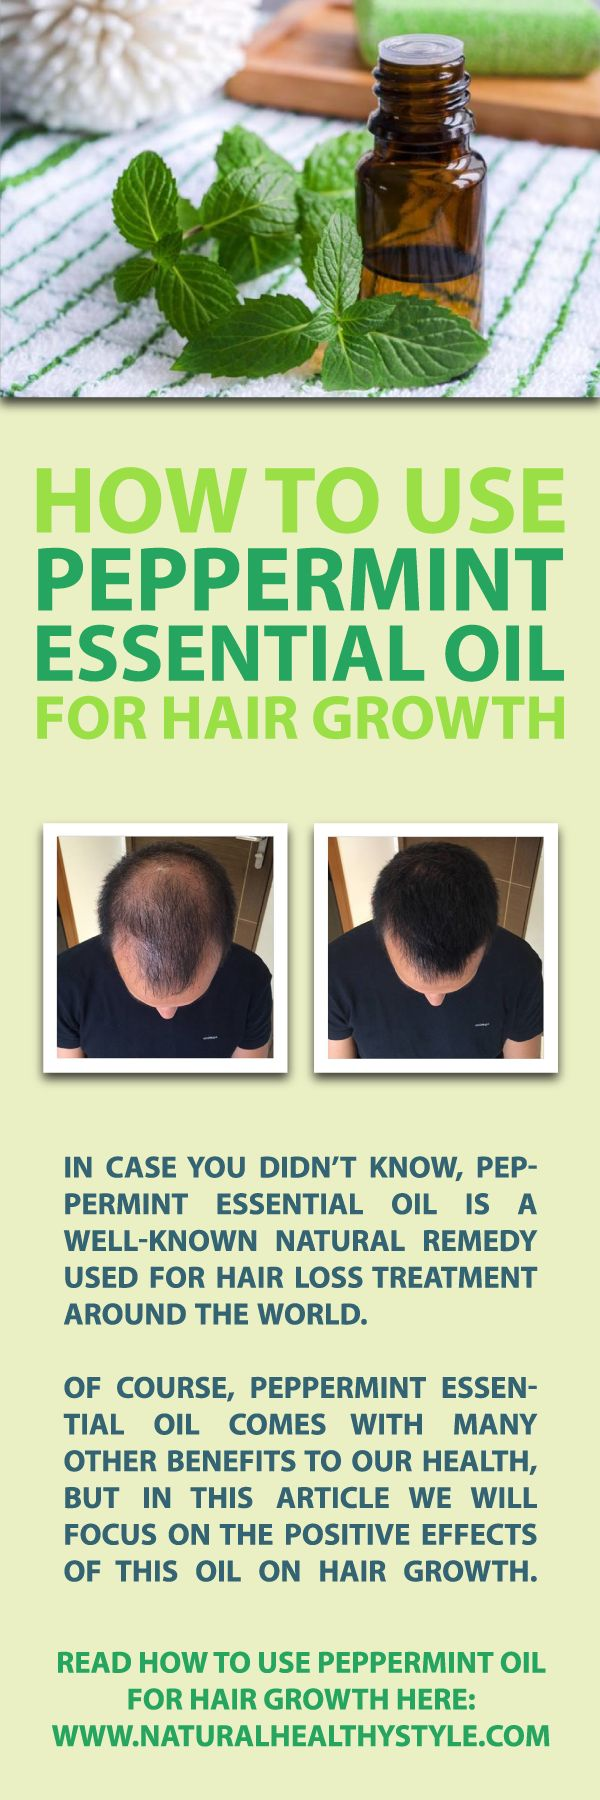 In case you didn't know, peppermint essential oil is a well-known natural remedy used for hair loss treatment around the world. Many people are convinced that it supports hair growth by boosting blood circulation in the area where so-called follicular ski